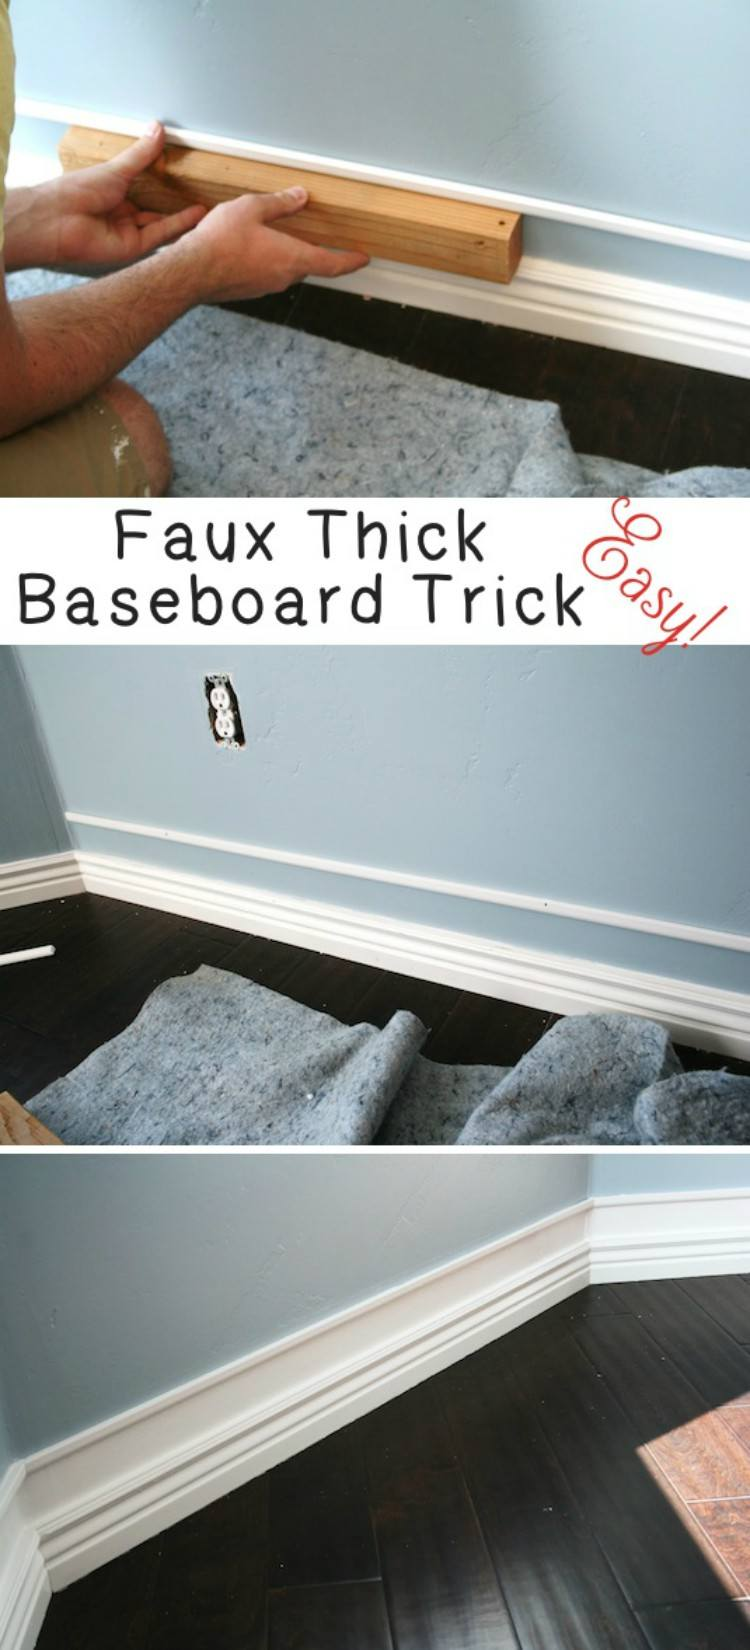 Faux Thick Baseboard